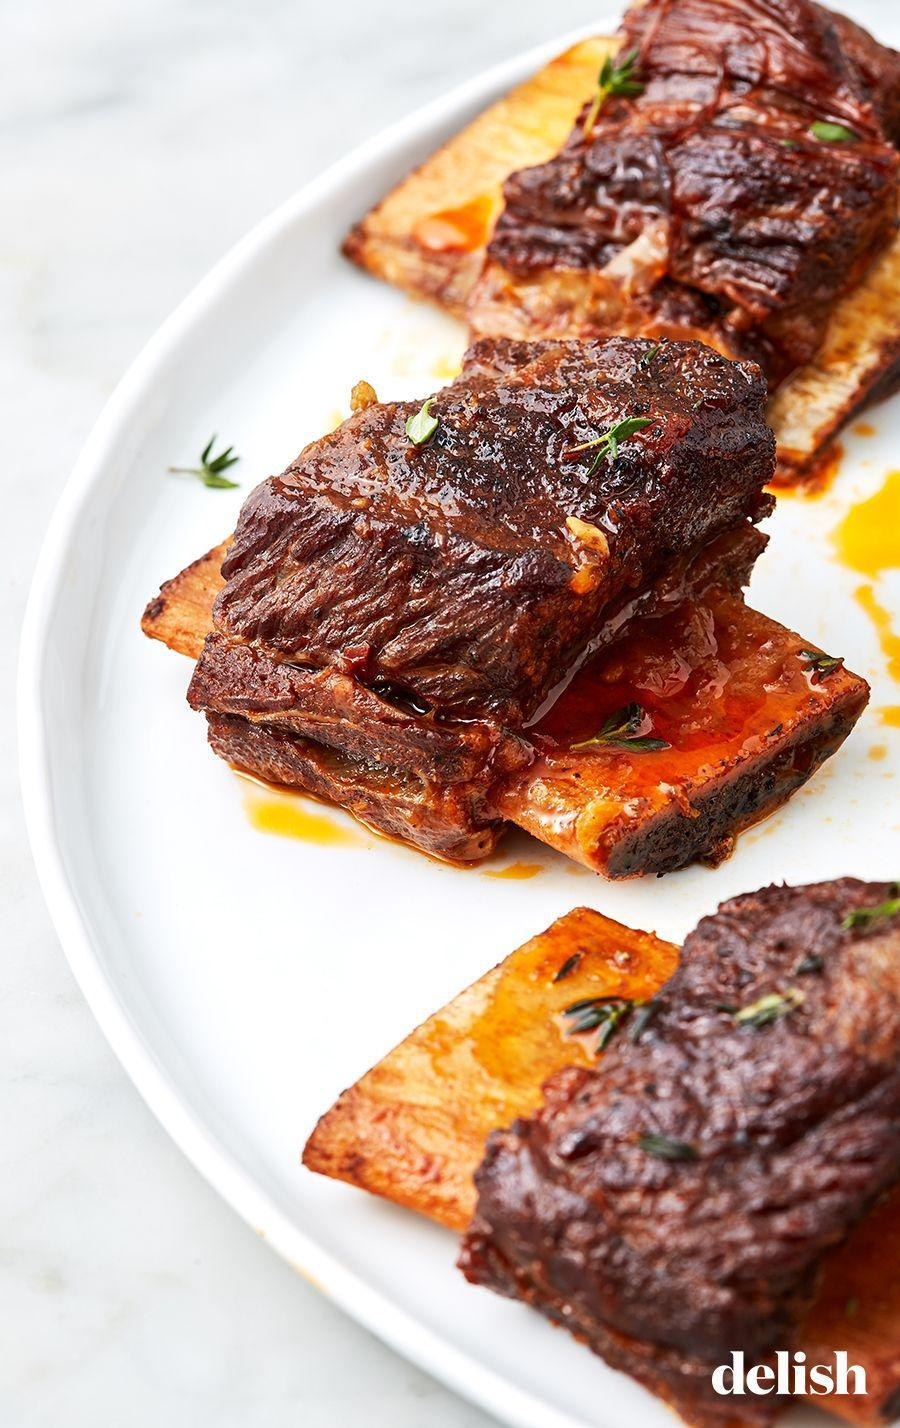 """<p>This Instant Pot recipe takes HALF the time most braised ribs recipes call for. </p><p>Get the recipe from <a href=""""https://www.delish.com/cooking/recipe-ideas/a27185995/instant-pot-short-ribs-recipe/"""" rel=""""nofollow noopener"""" target=""""_blank"""" data-ylk=""""slk:Delish"""" class=""""link rapid-noclick-resp"""">Delish</a>.</p>"""